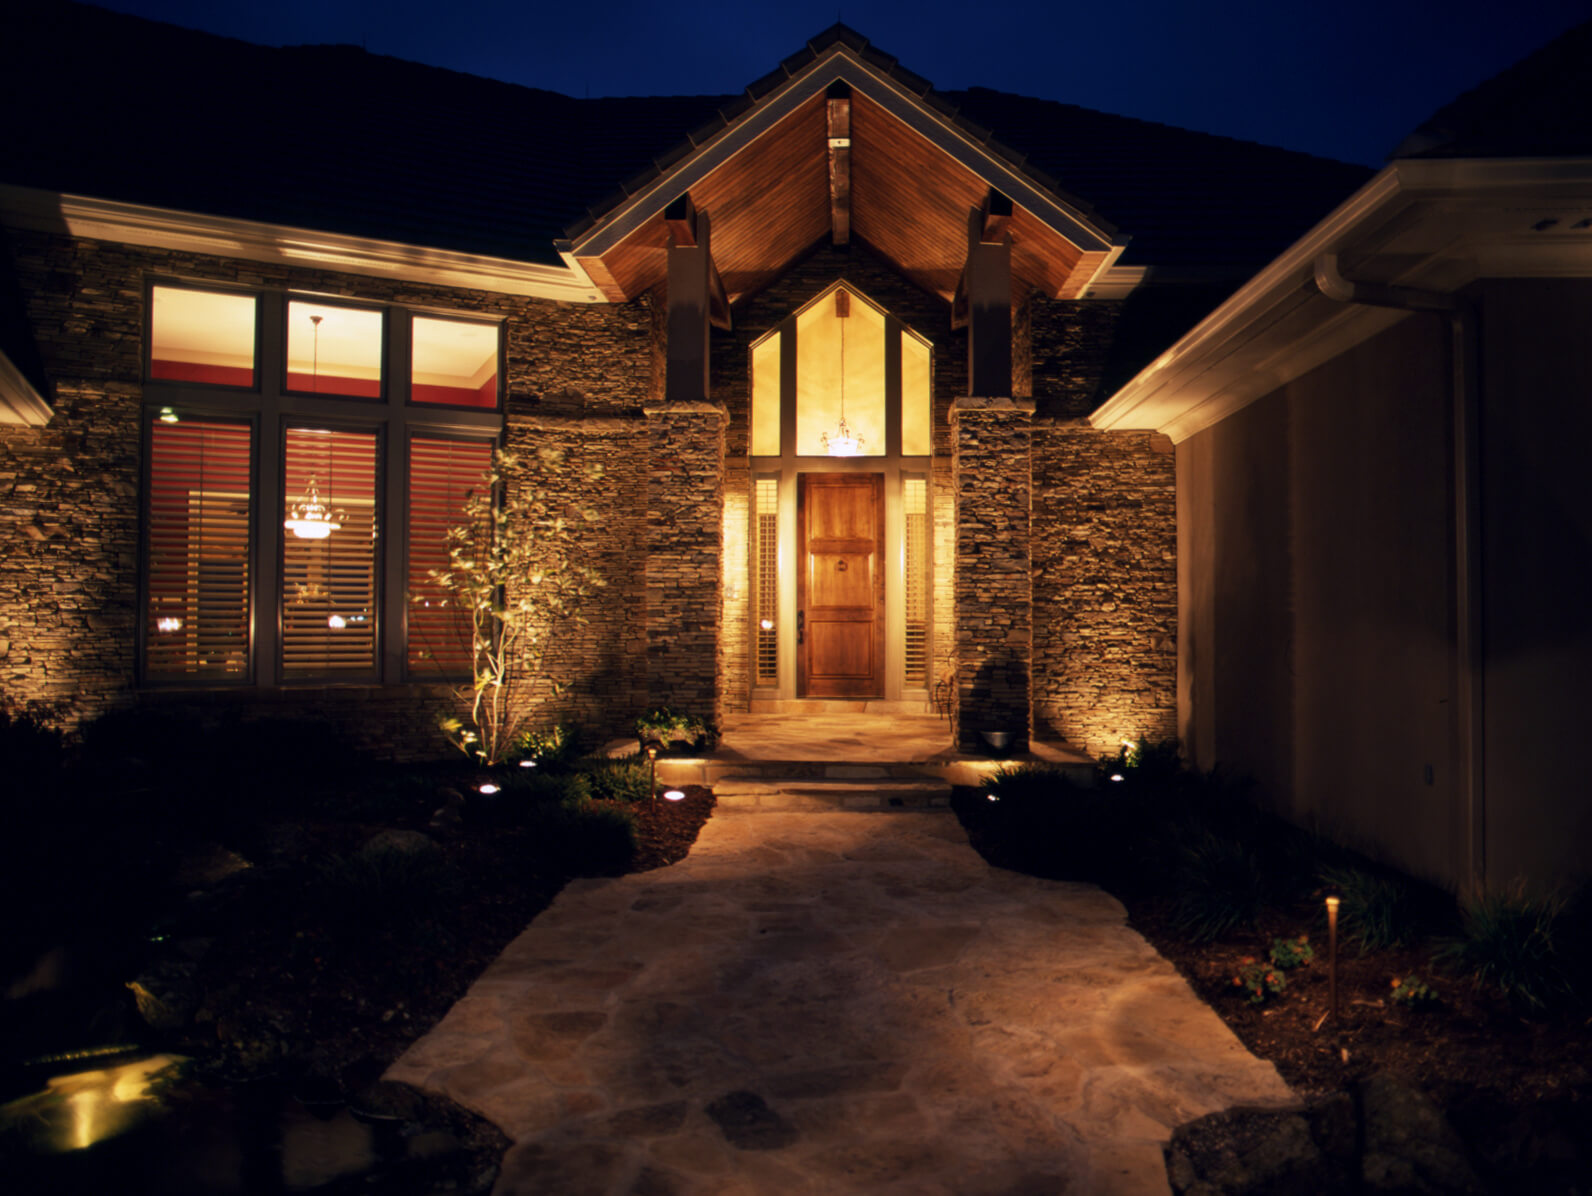 Home front entryway with lighting